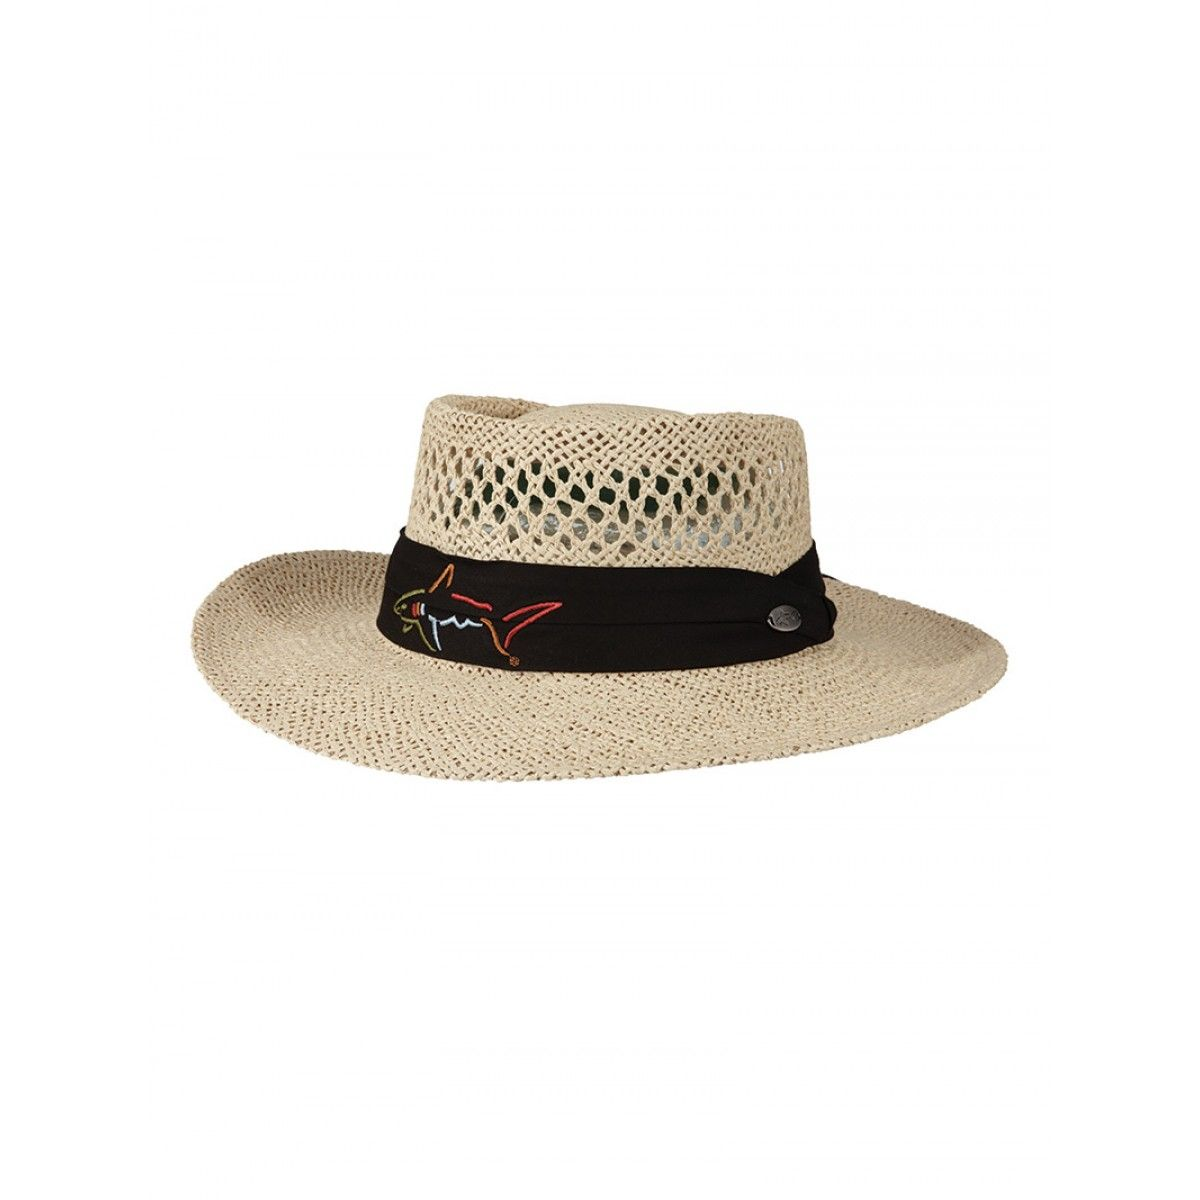 Greg Norman Signature Straw Hat Golf Ski Warehouse Mens Golf Outfit Hats Straw Hat